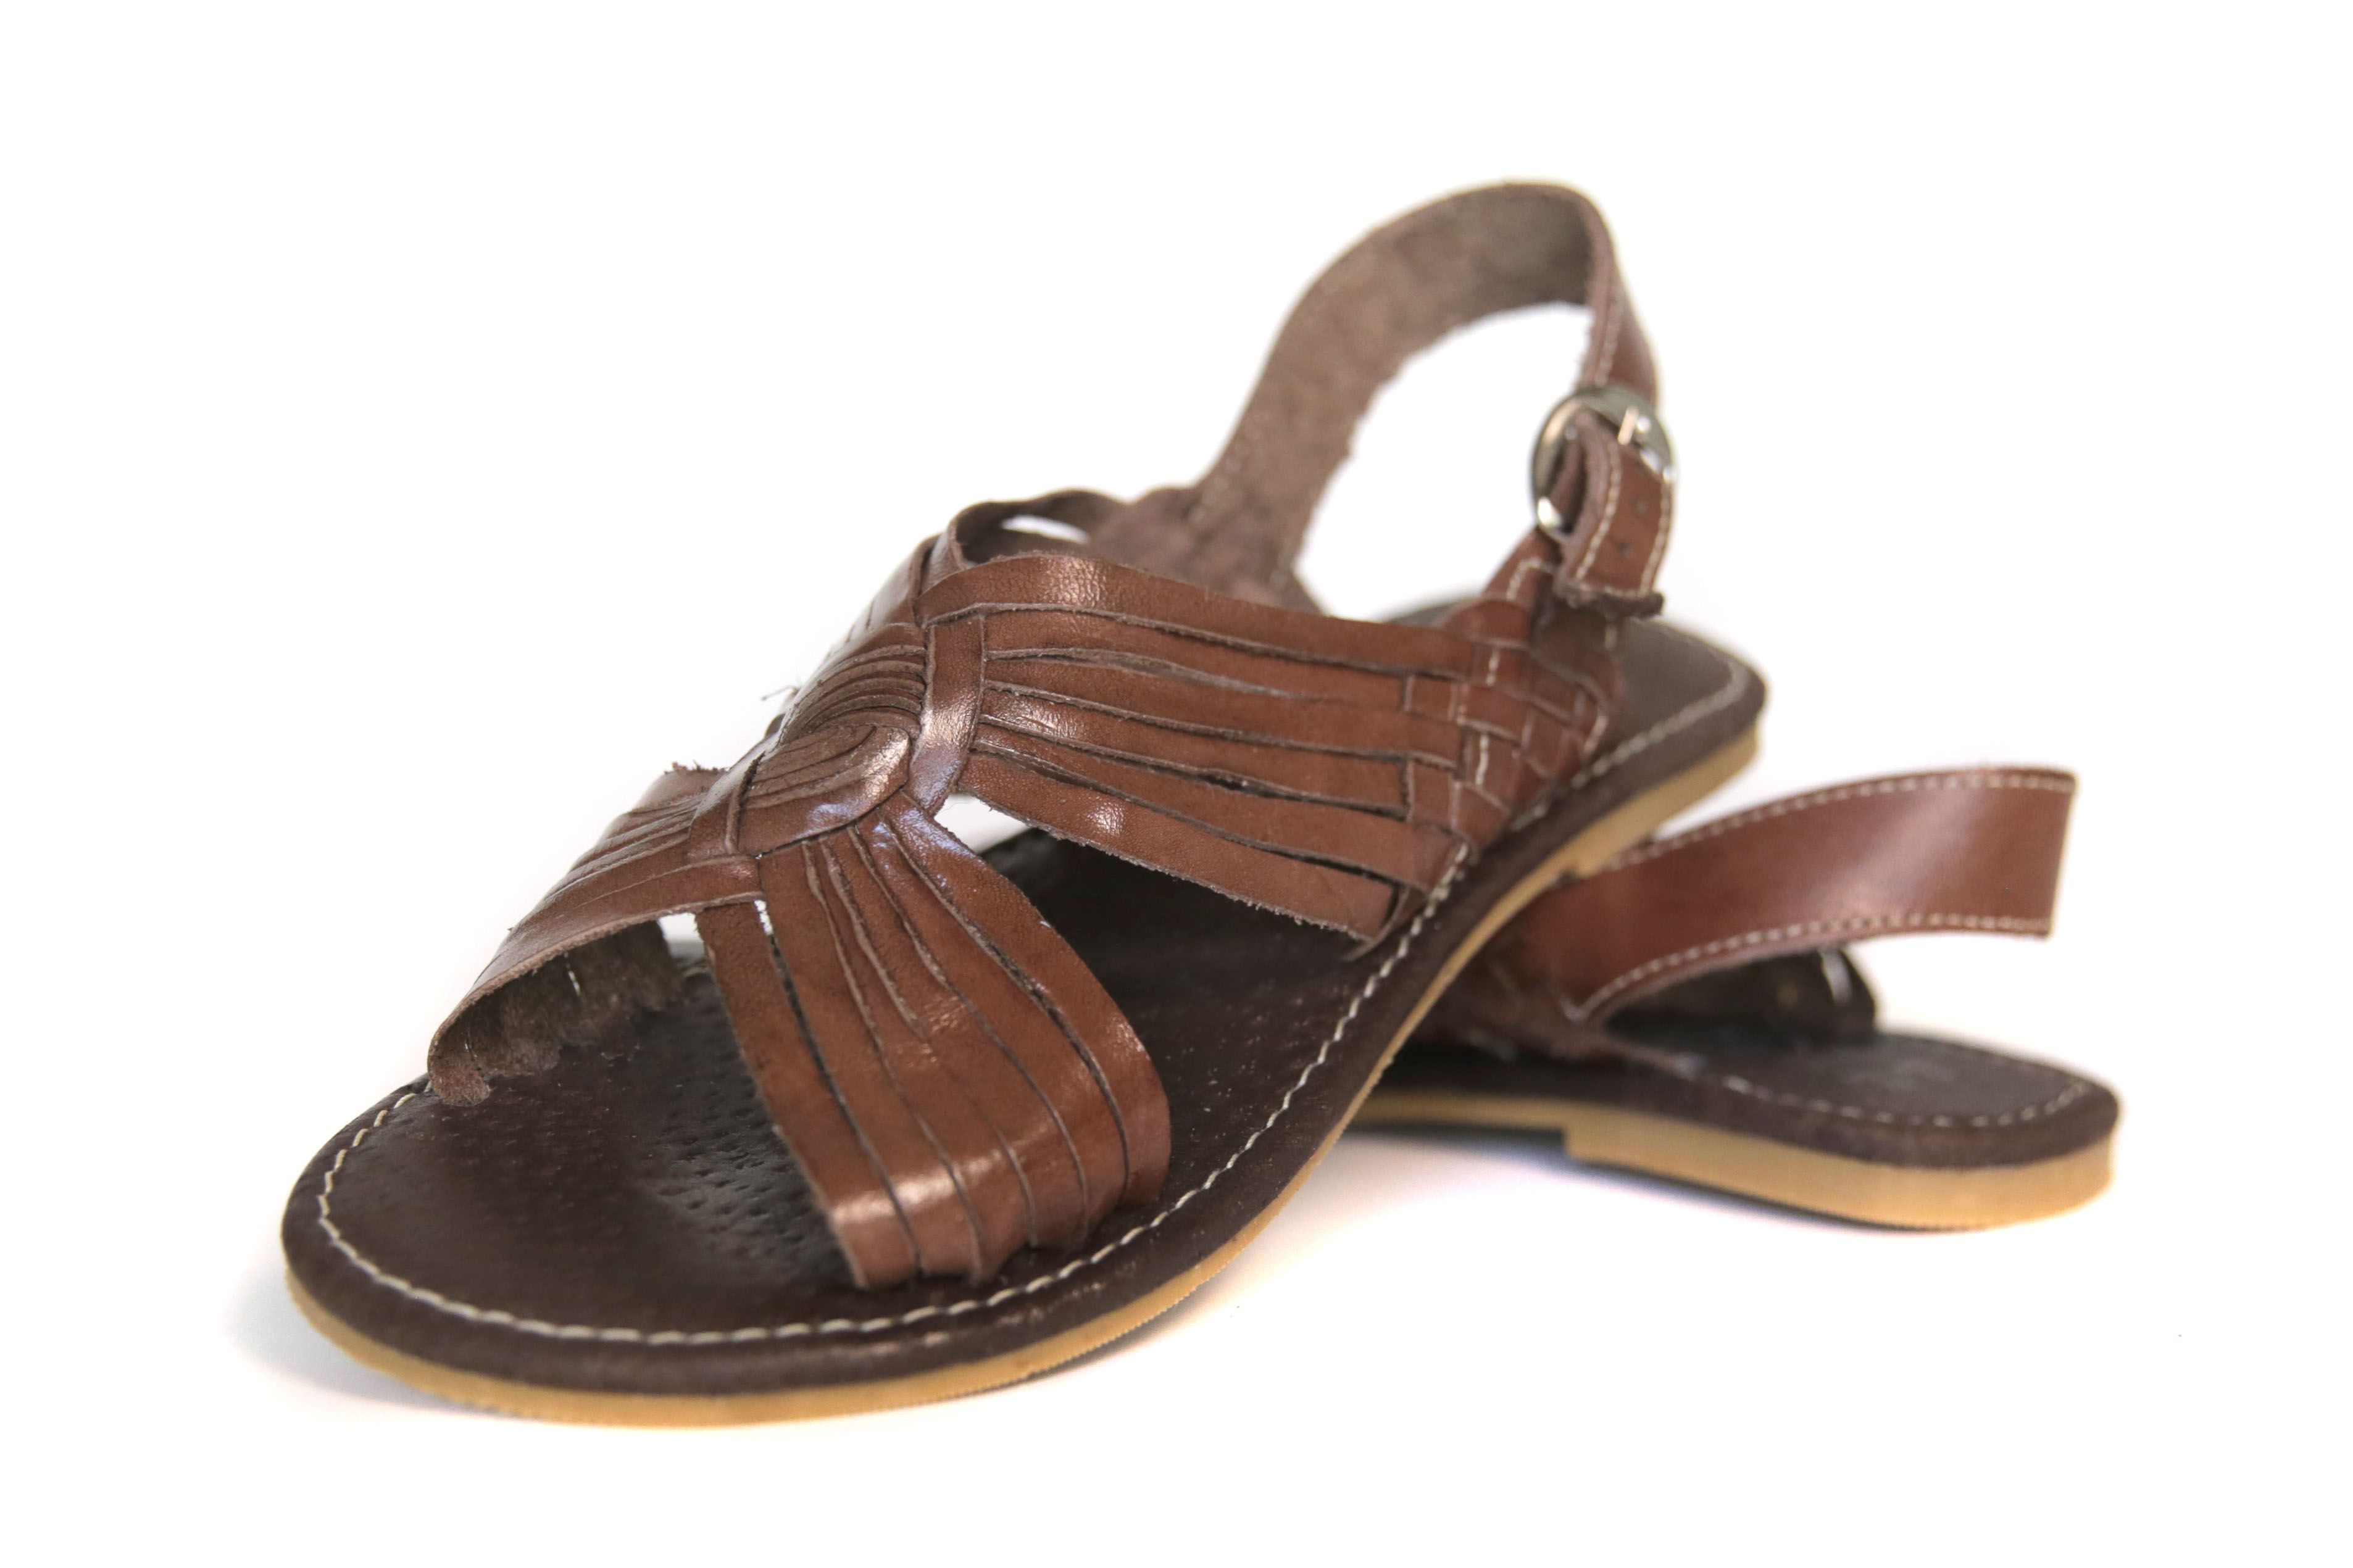 670c2b517273 Women s Petricor Open Toe Huarache Sandals - Dark Brown A very classic and  stylish looking huarache -- the Petricor style huarache sandals evoke a  beautiful ...